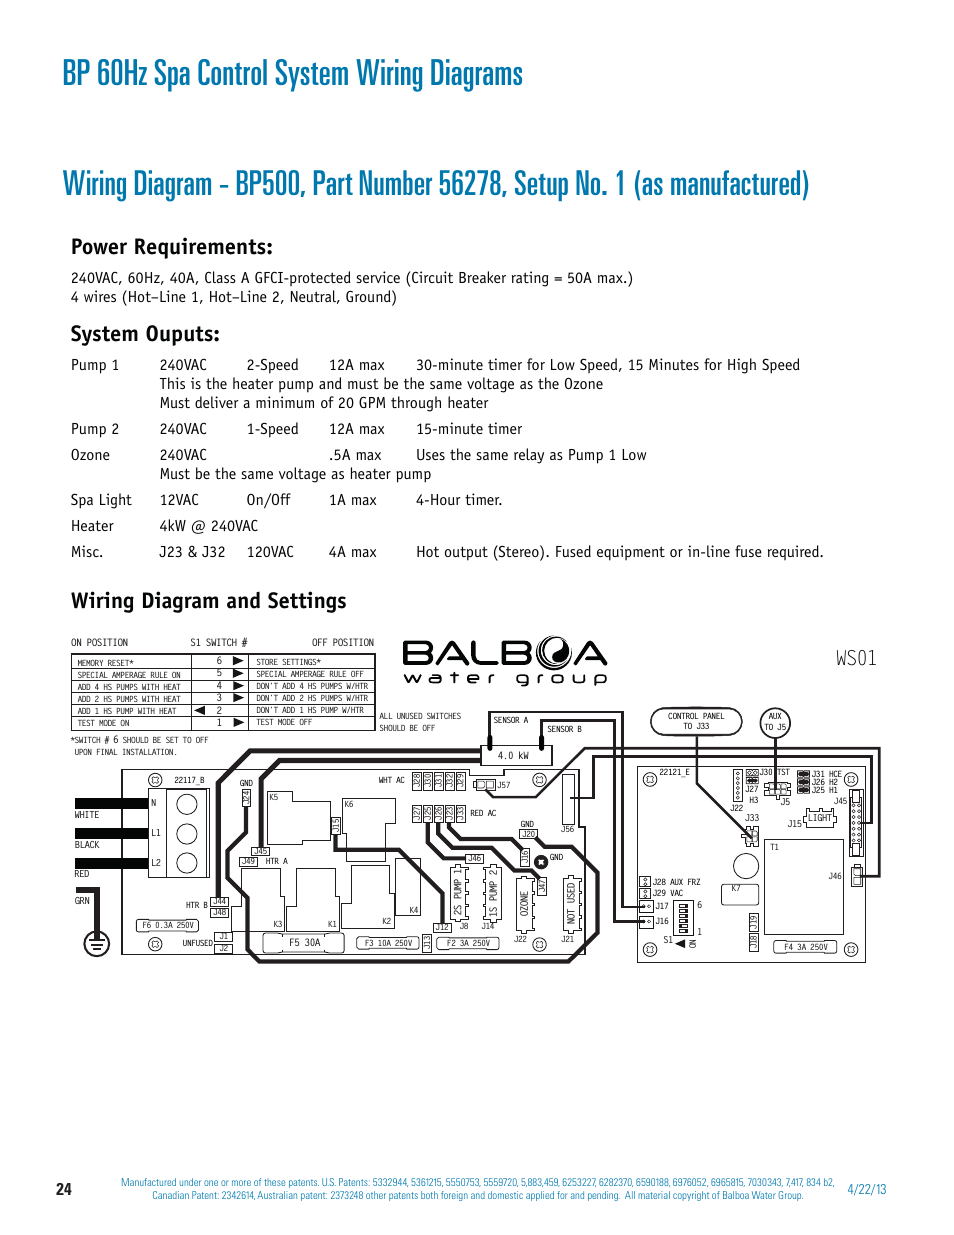 balboa v series wiring installation manualsmall resolution of bp 60hz spa control system wiring diagrams power requirements balboa spa wiring diagrams